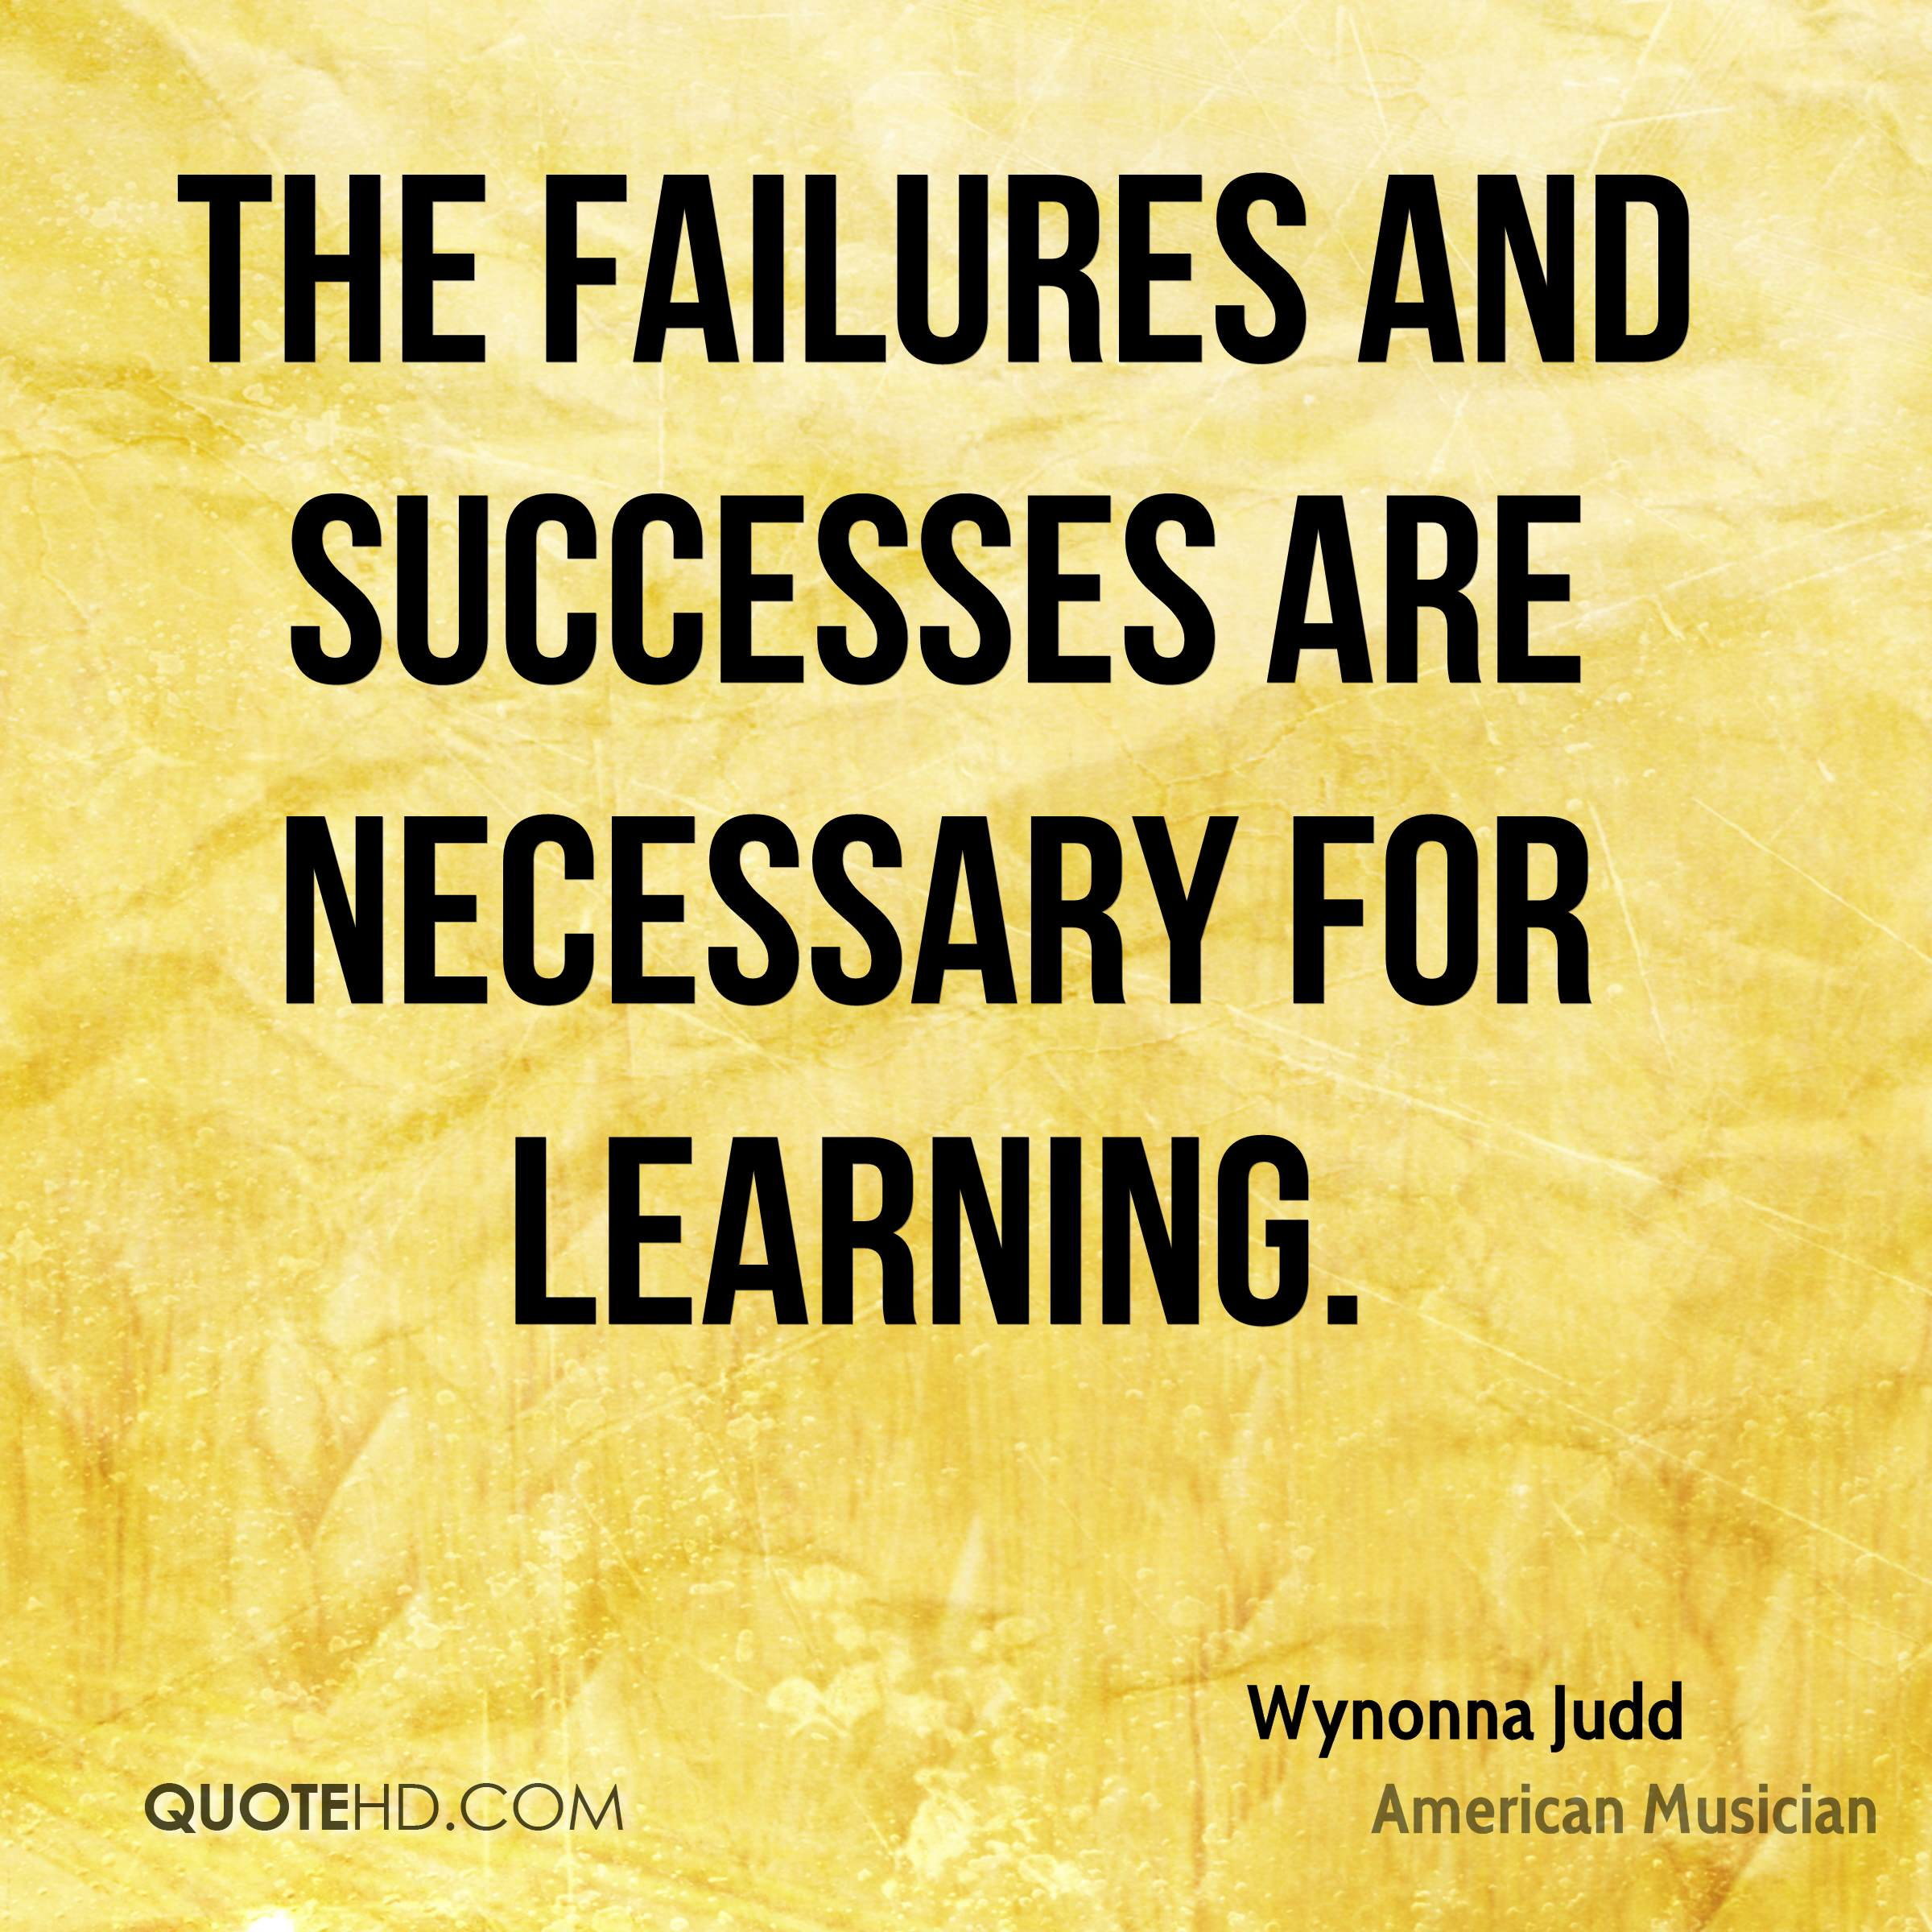 The failures and successes are necessary for learning.